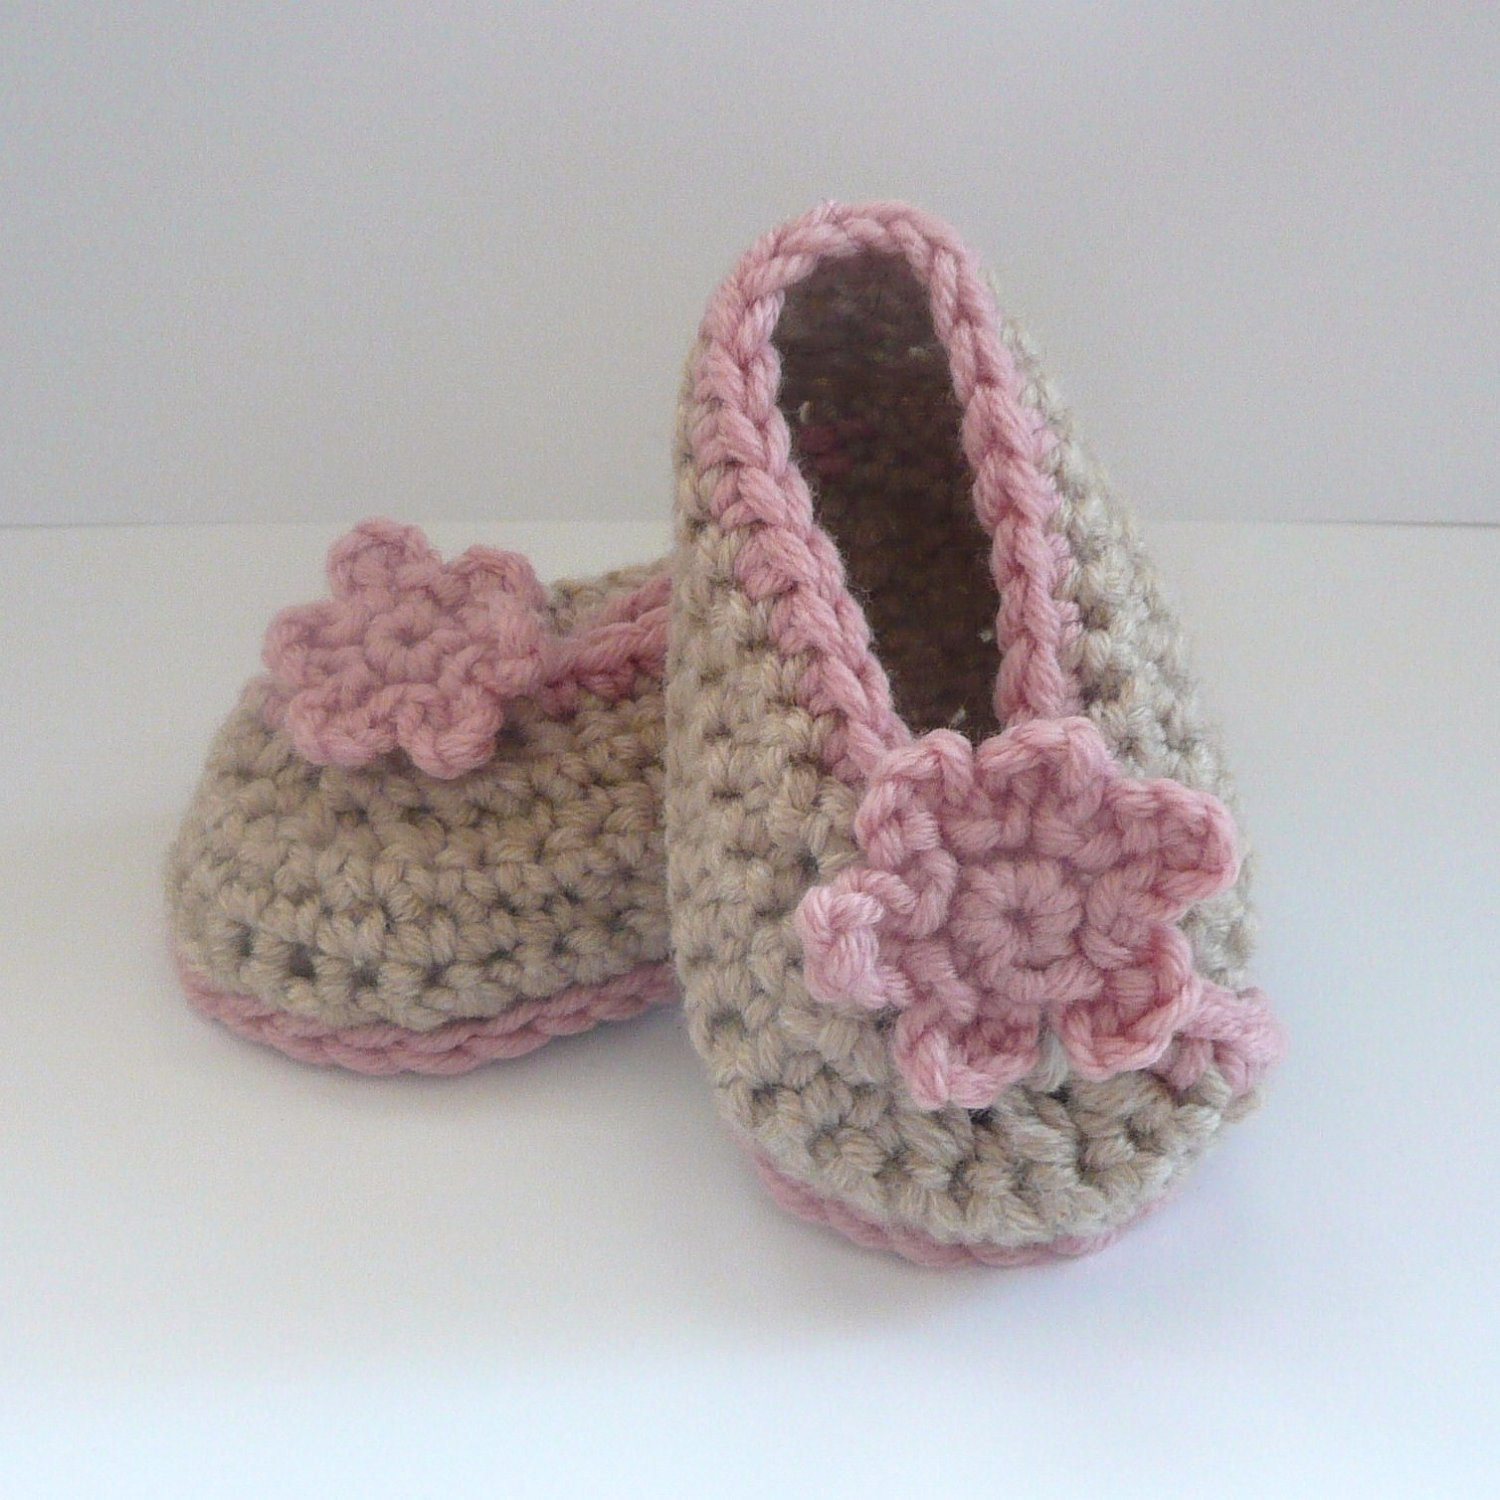 Inspirational Crochet Pattern Baby Booties Crossover Baby Shoes Instant Crochet Baby socks Of Marvelous 50 Images Crochet Baby socks